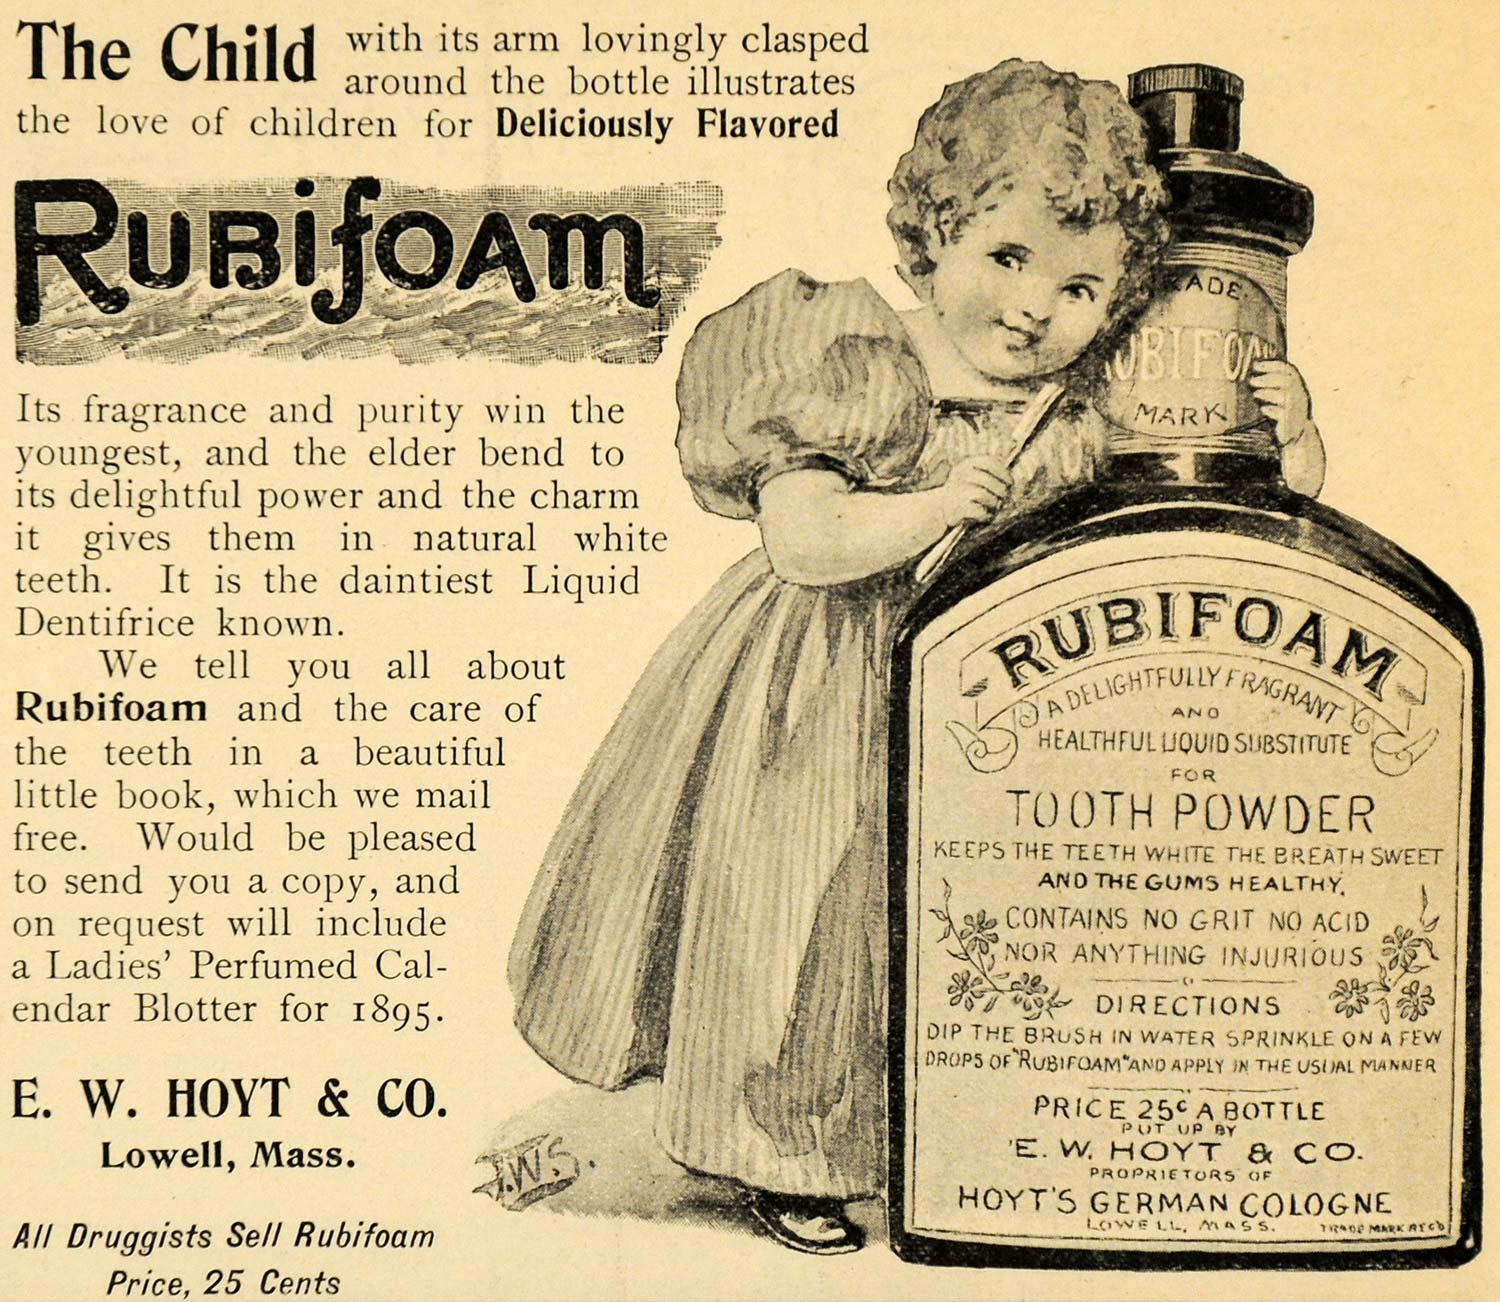 1895 Ad E. W. Hoyt Rubifoam Tooth Powder Dental Lowell - ORIGINAL LHJ4